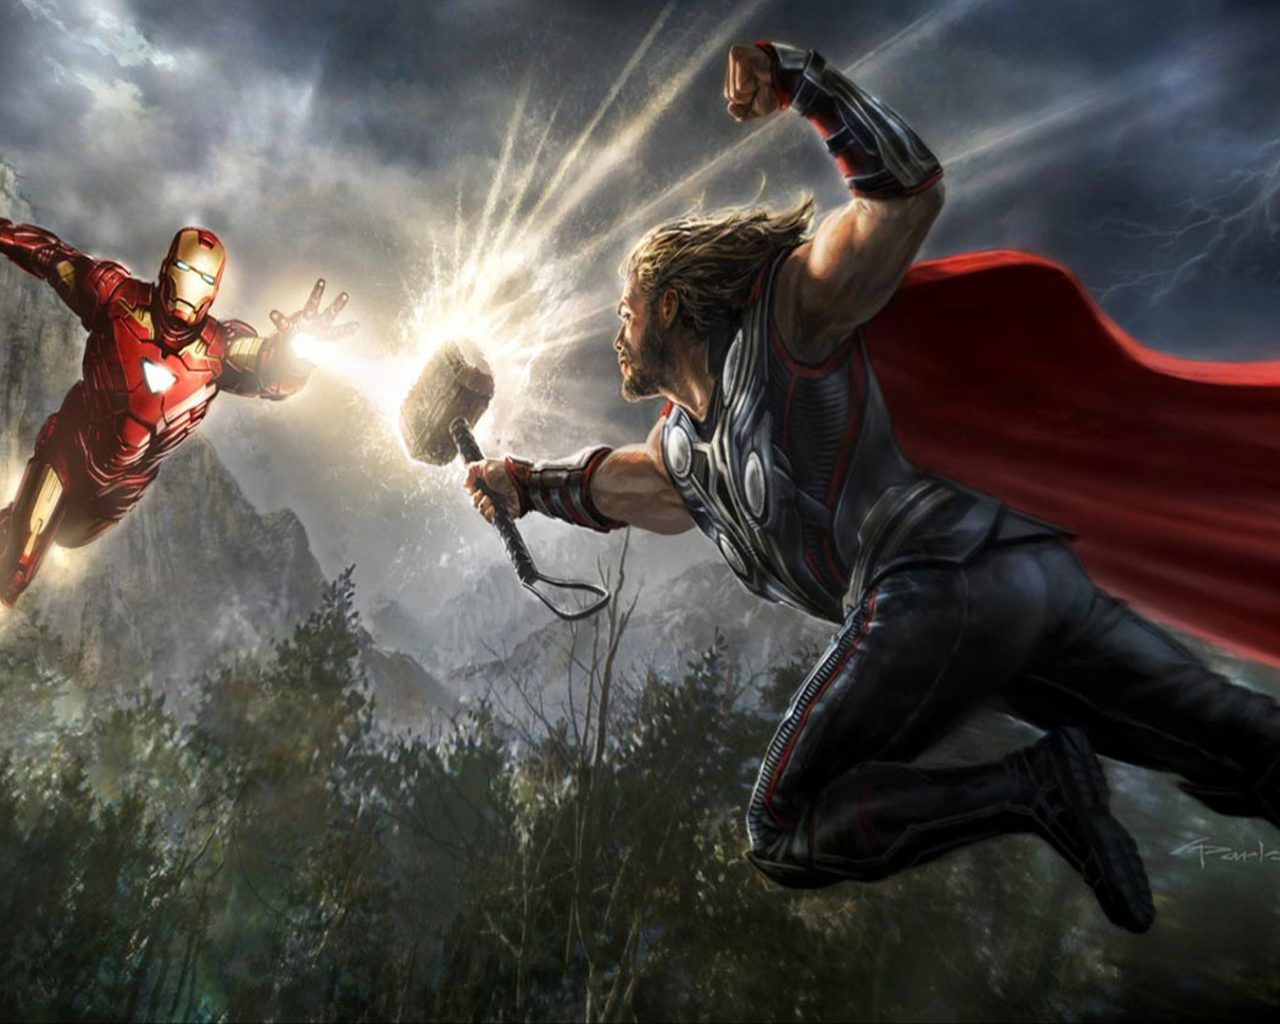 Thor And Iron Man The Avengers Marvel Movies Full Hd Wallpapers1920x1080 : Wallpapers13